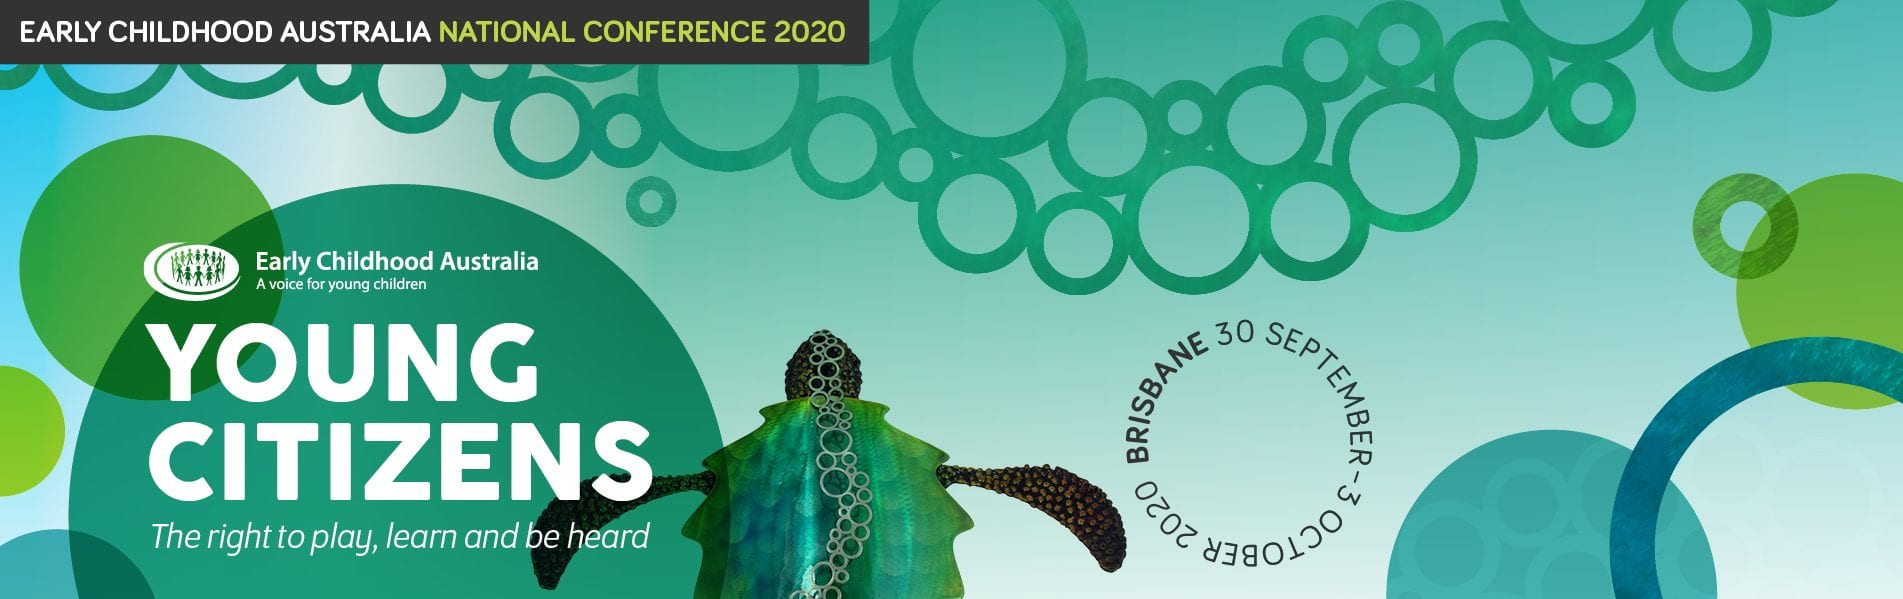 Early Childhood Australia National Conference 2020 Banner